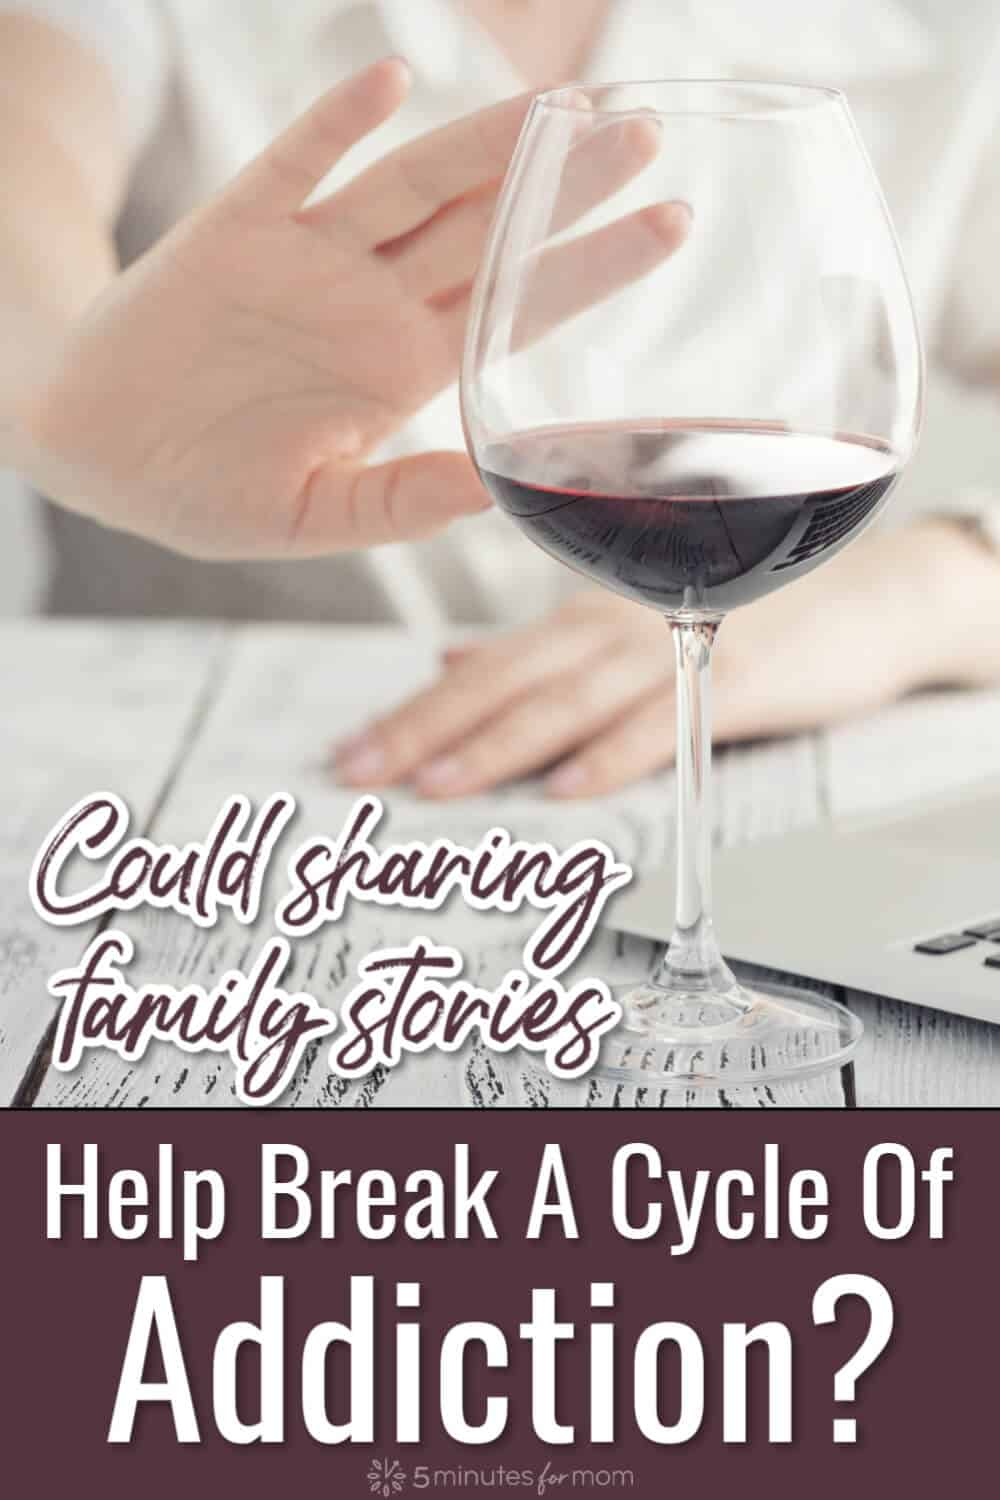 Could Sharing Family Stories Help Break Cycle of Addiction